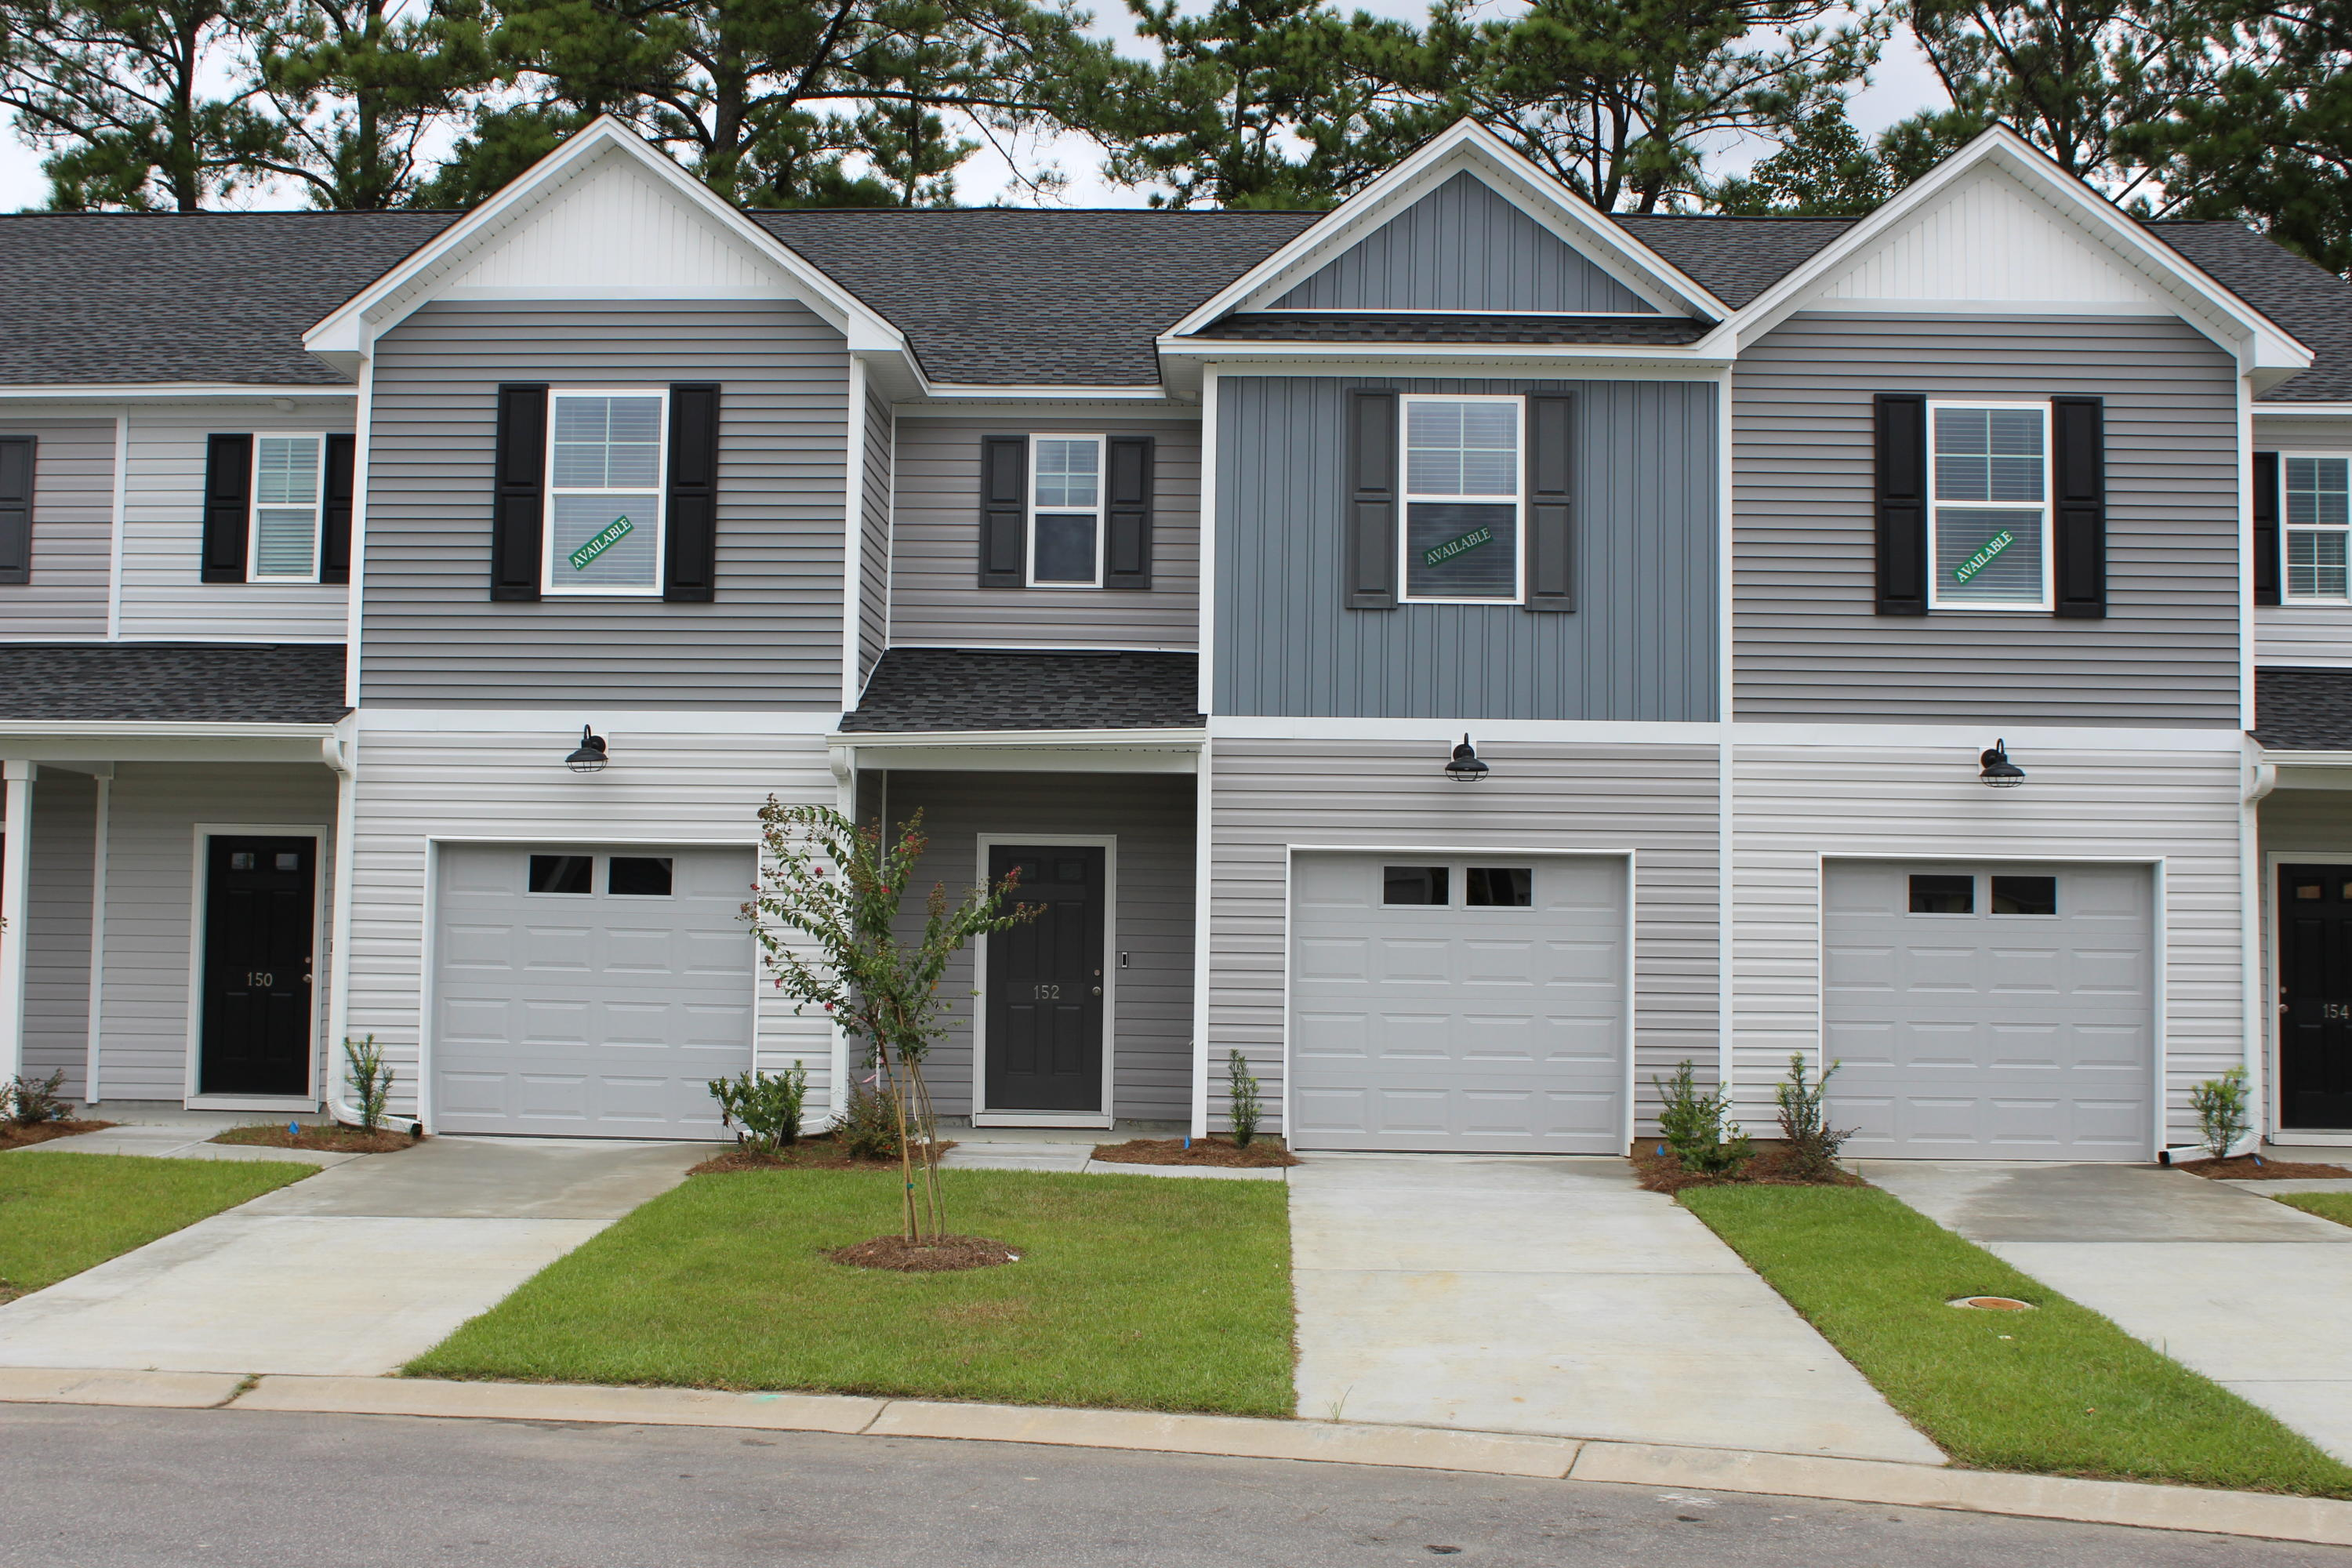 Lakeview Commons Homes For Sale - 152 Buchanan, Goose Creek, SC - 1